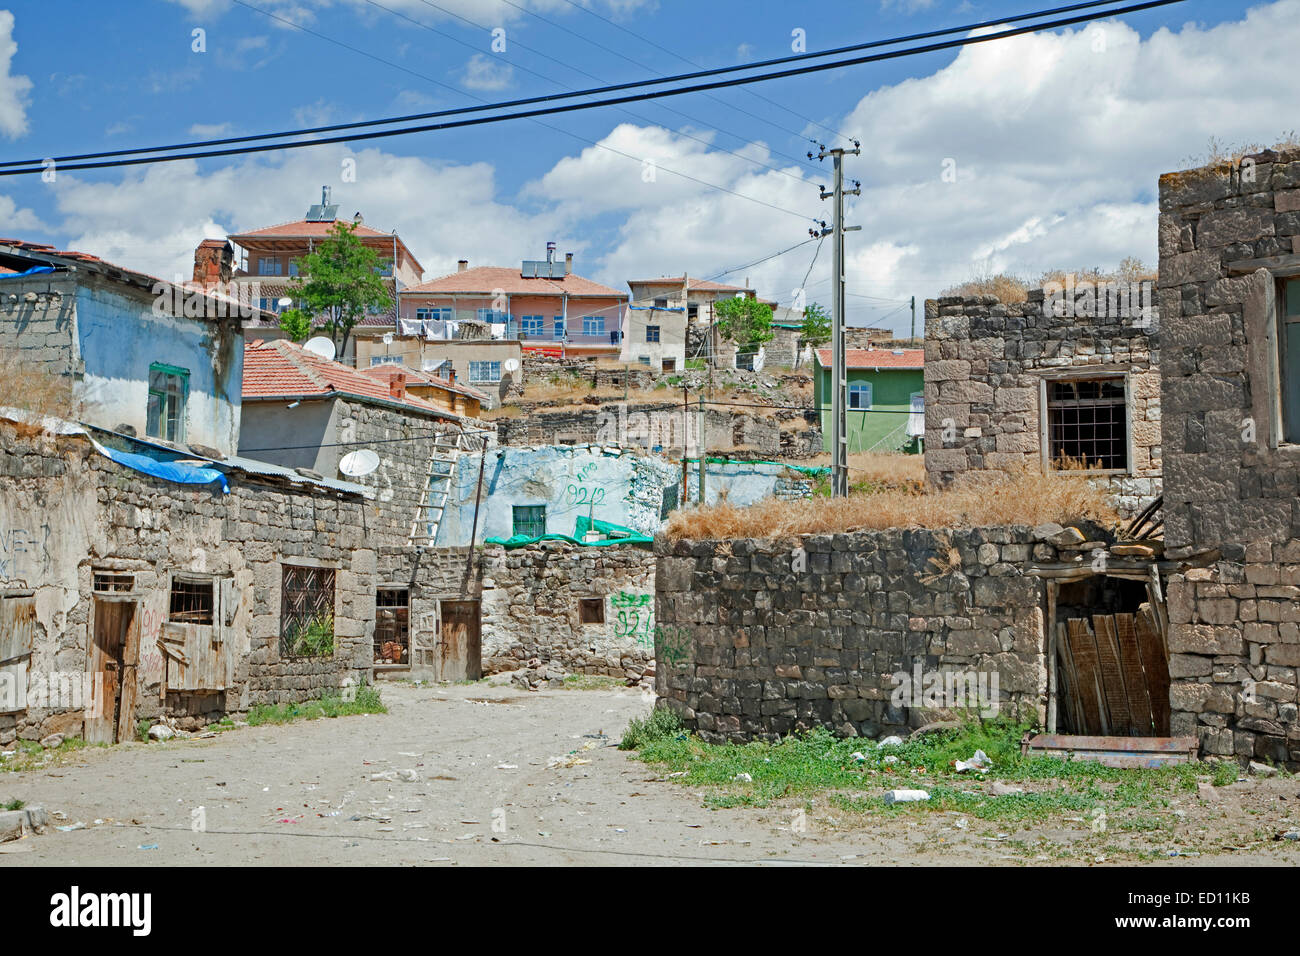 Street with poor houses in Turkish village in Central Anatolia, Turkey - Stock Image